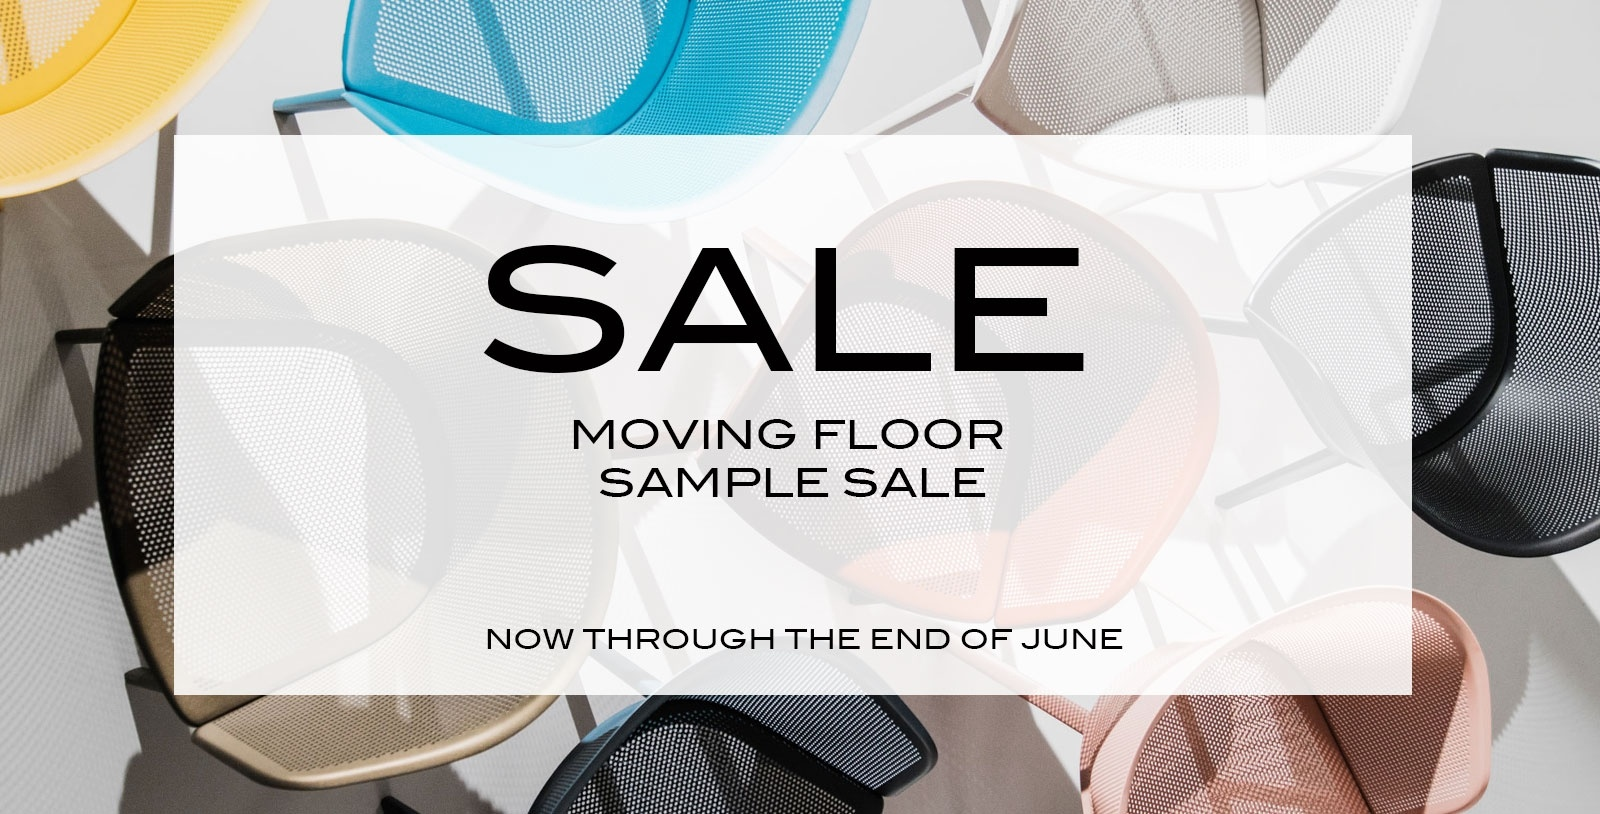 Outdoor Furniture Floor Sample Sale